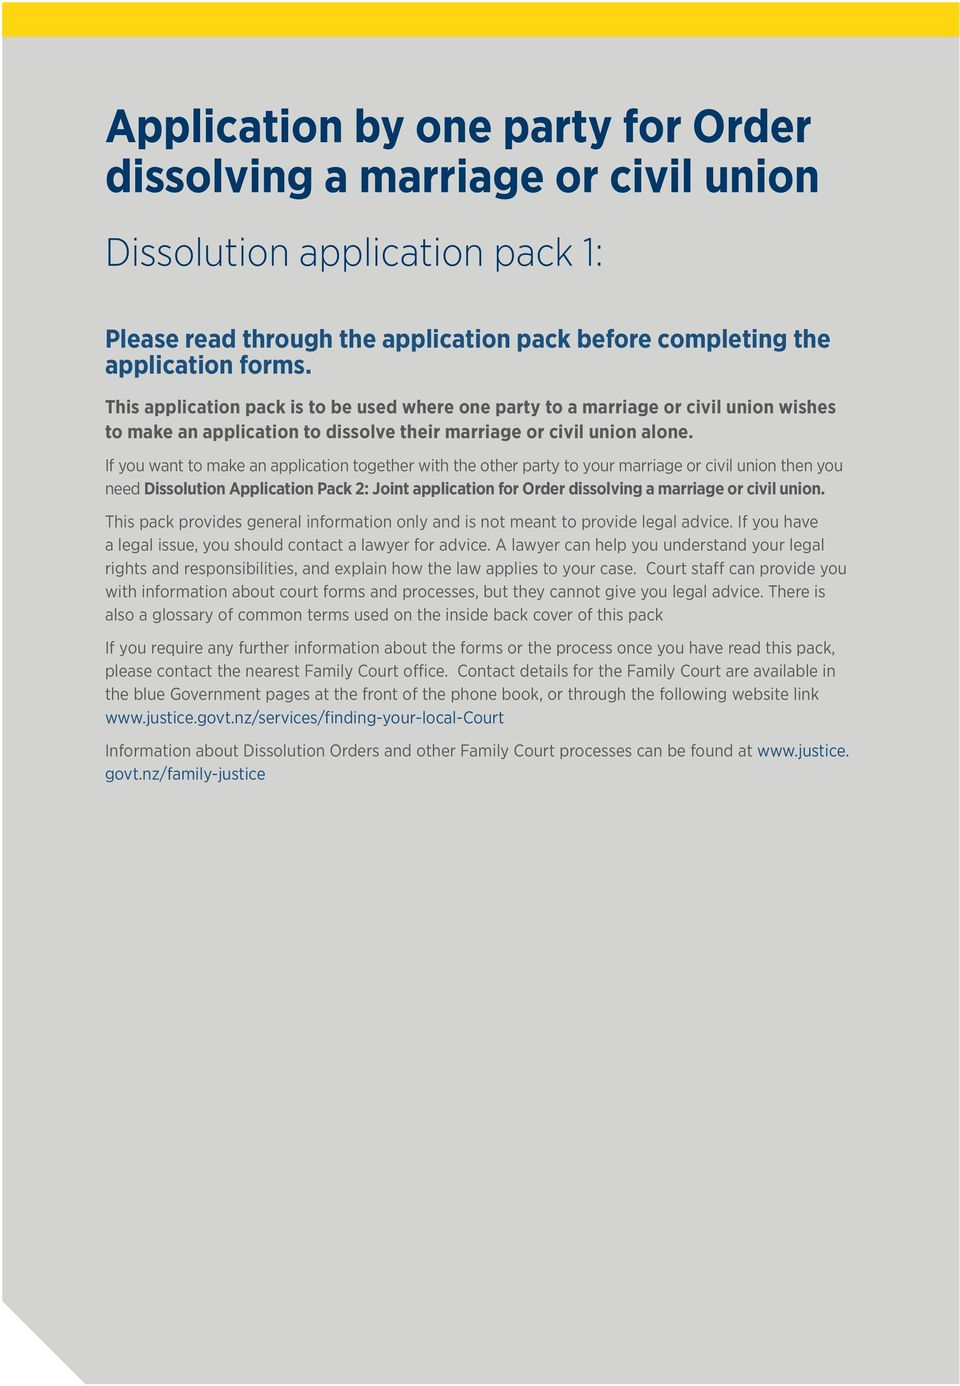 If you want to make an application together with the other party to your marriage or civil union then you need Dissolution Application Pack 2: Joint application for Order dissolving a marriage or